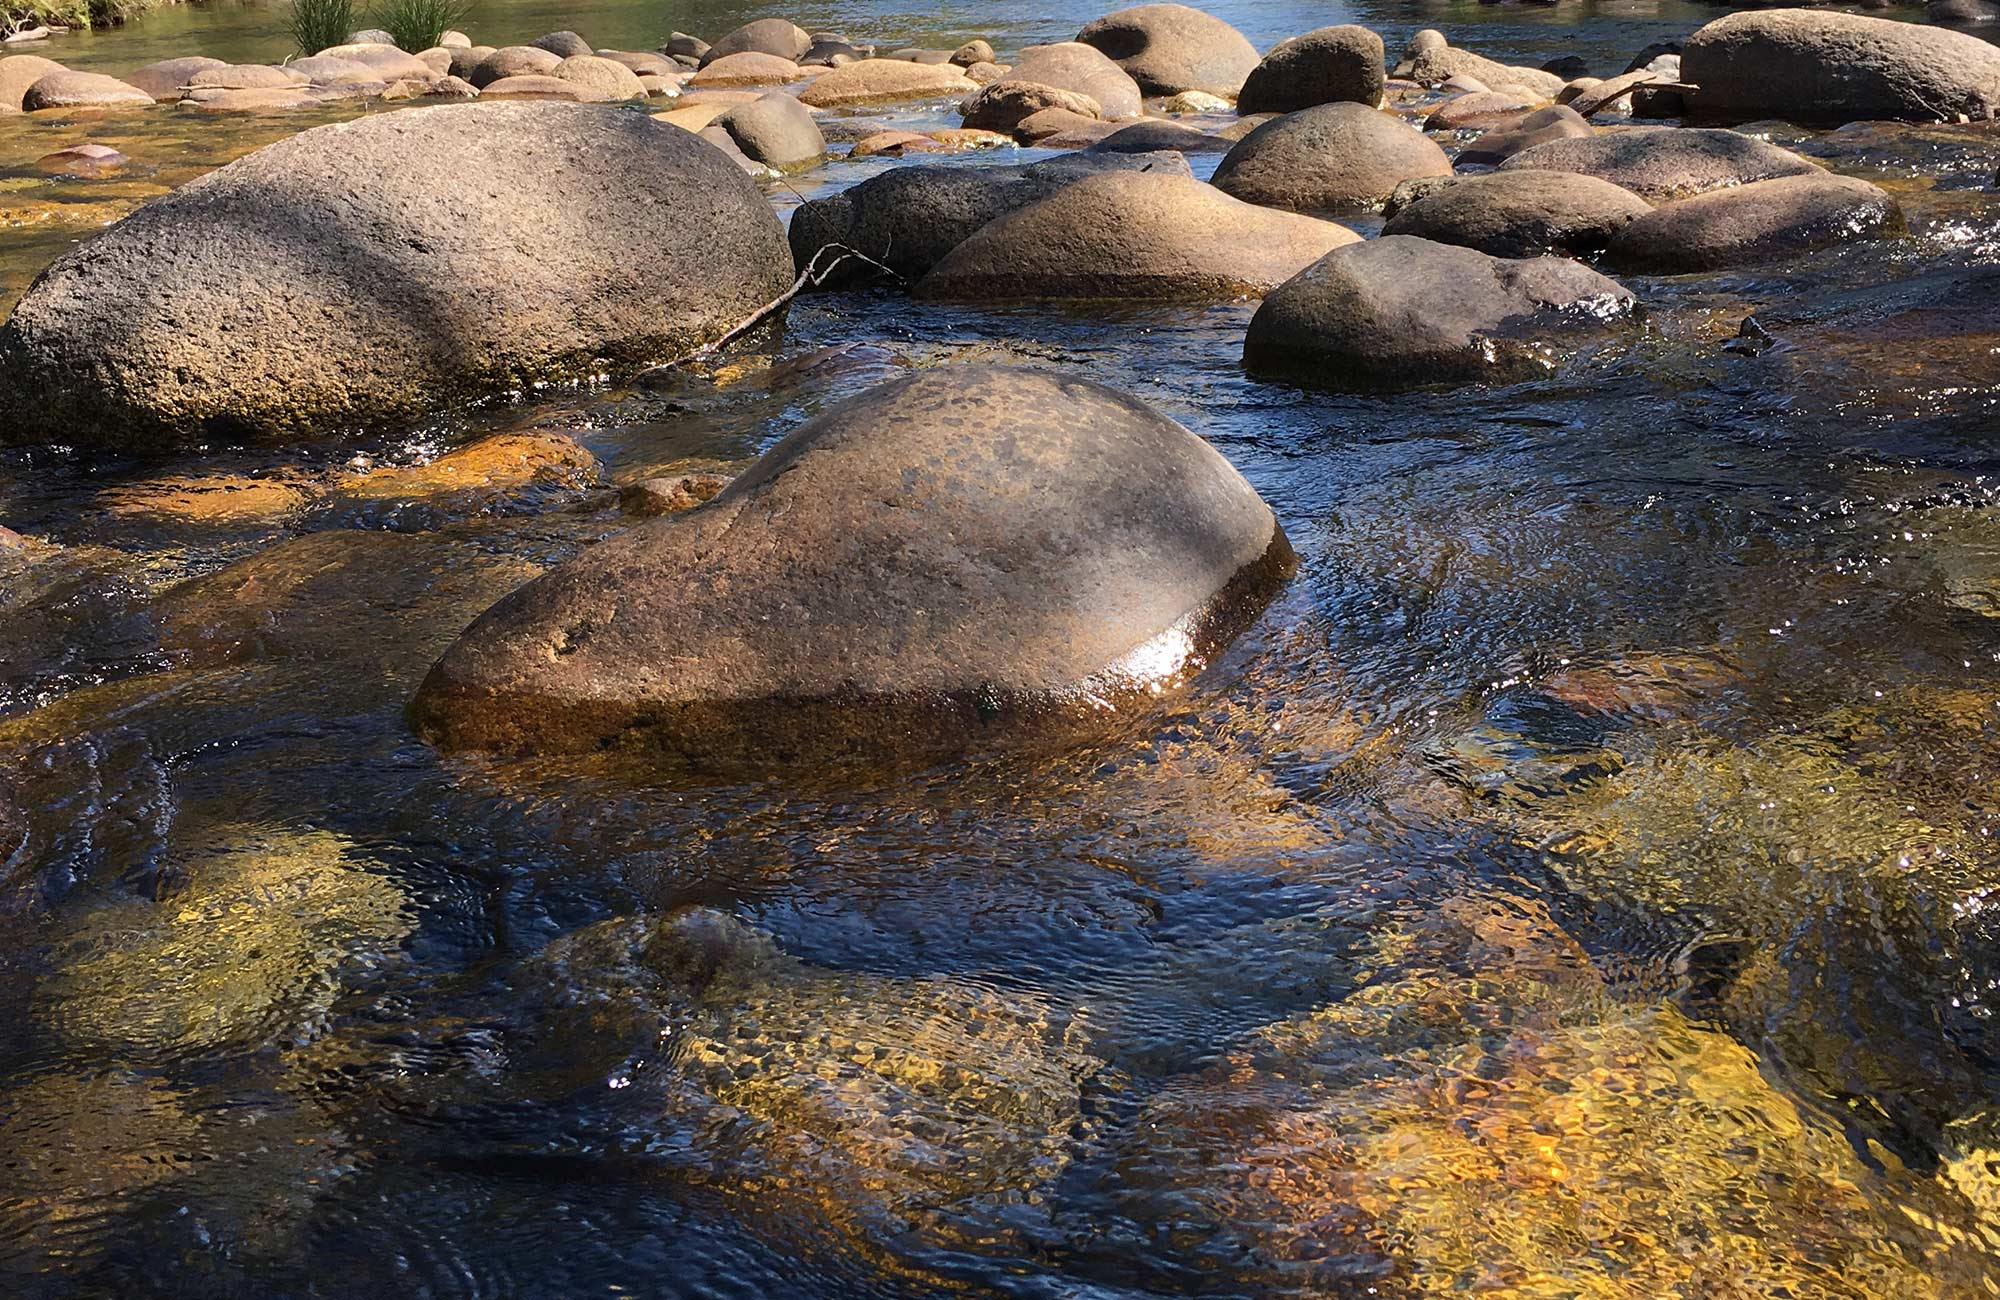 Close up view of river rocks in Swampy Plain River, Kosciuszko National Park. Photo: Elinor Sheargold/OEH